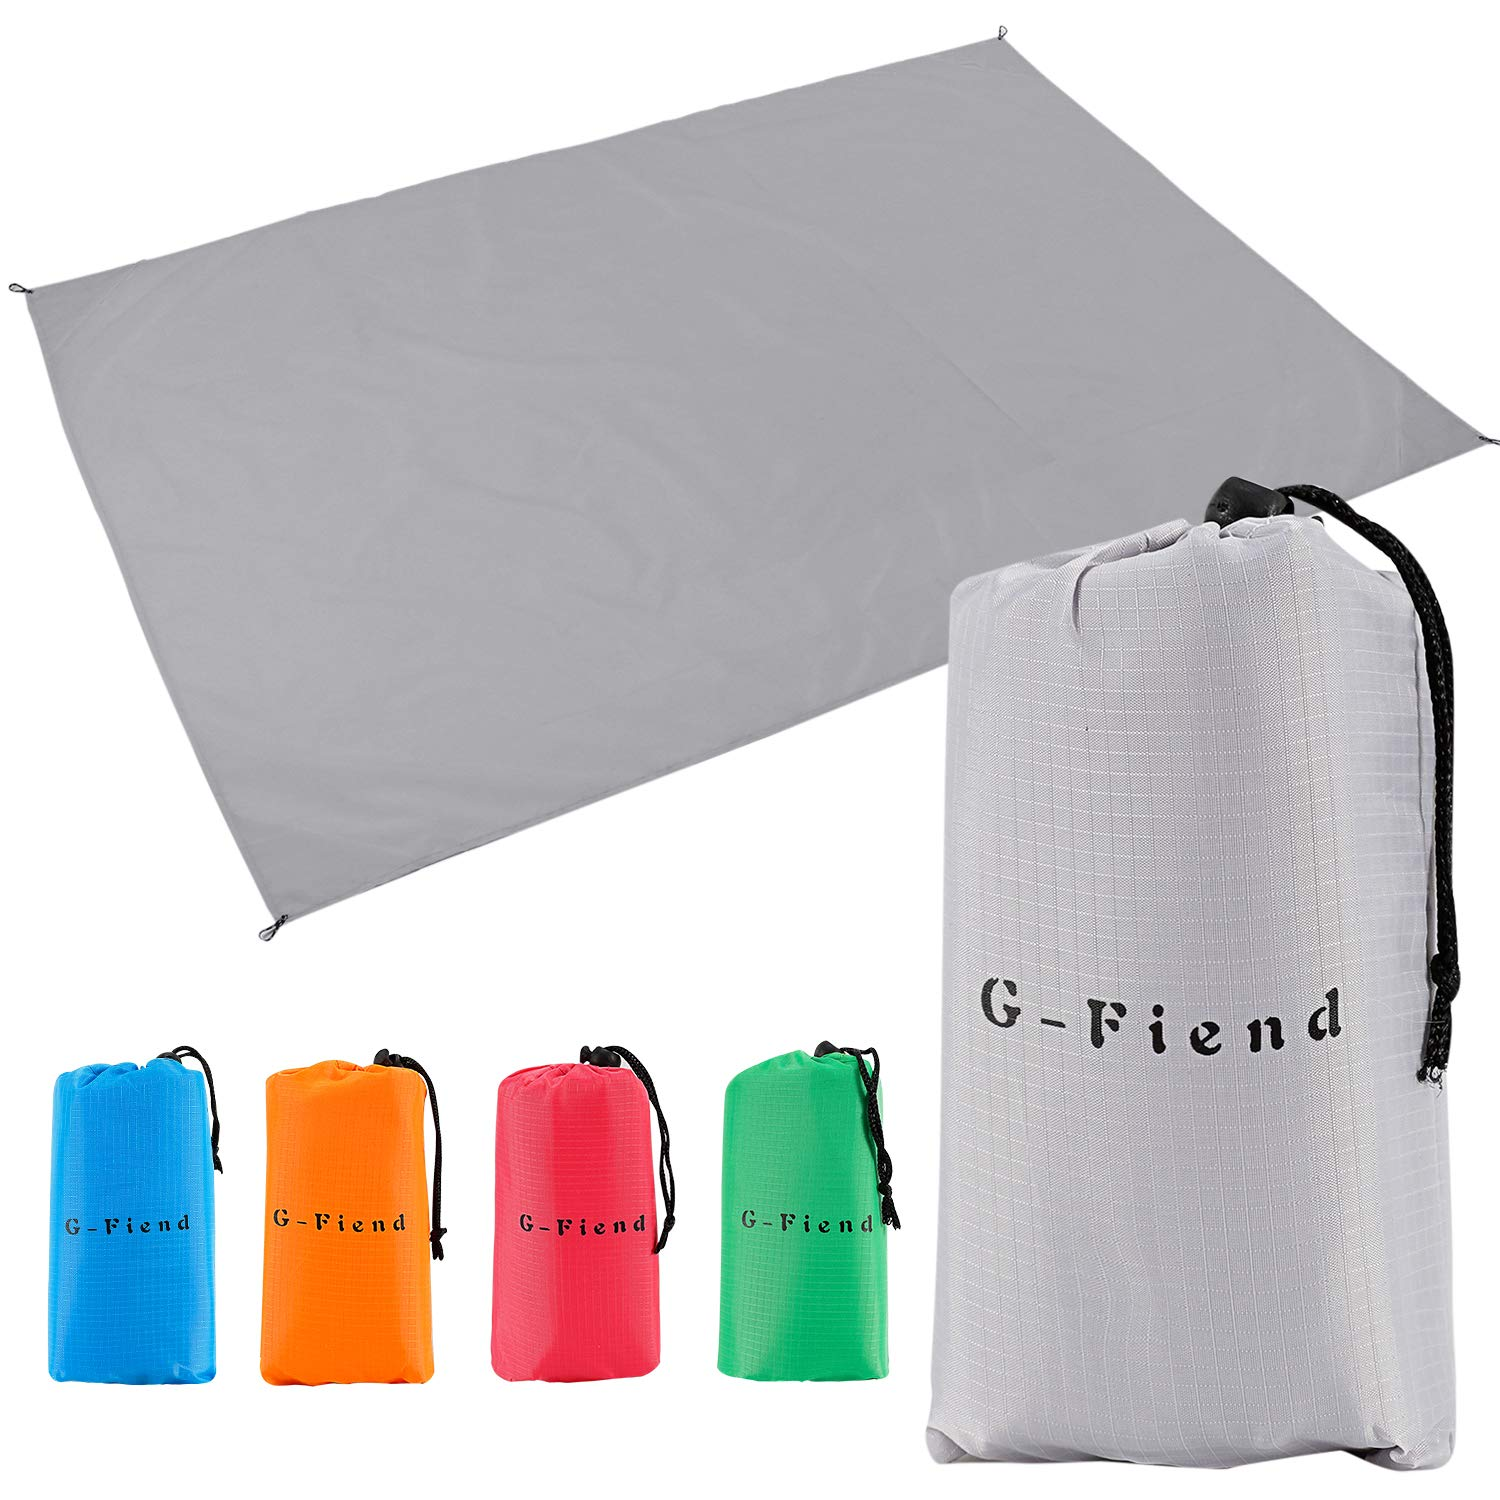 G-Fiend Outdoor Beach Blanket,5579in Compact Pocket Blanket Soft/&Quick Drying Ripstop Nylon Durable Lightweight Picnic Mat for Travel Camping/&Hiking with Corner Pockets and Portable Storage Bag